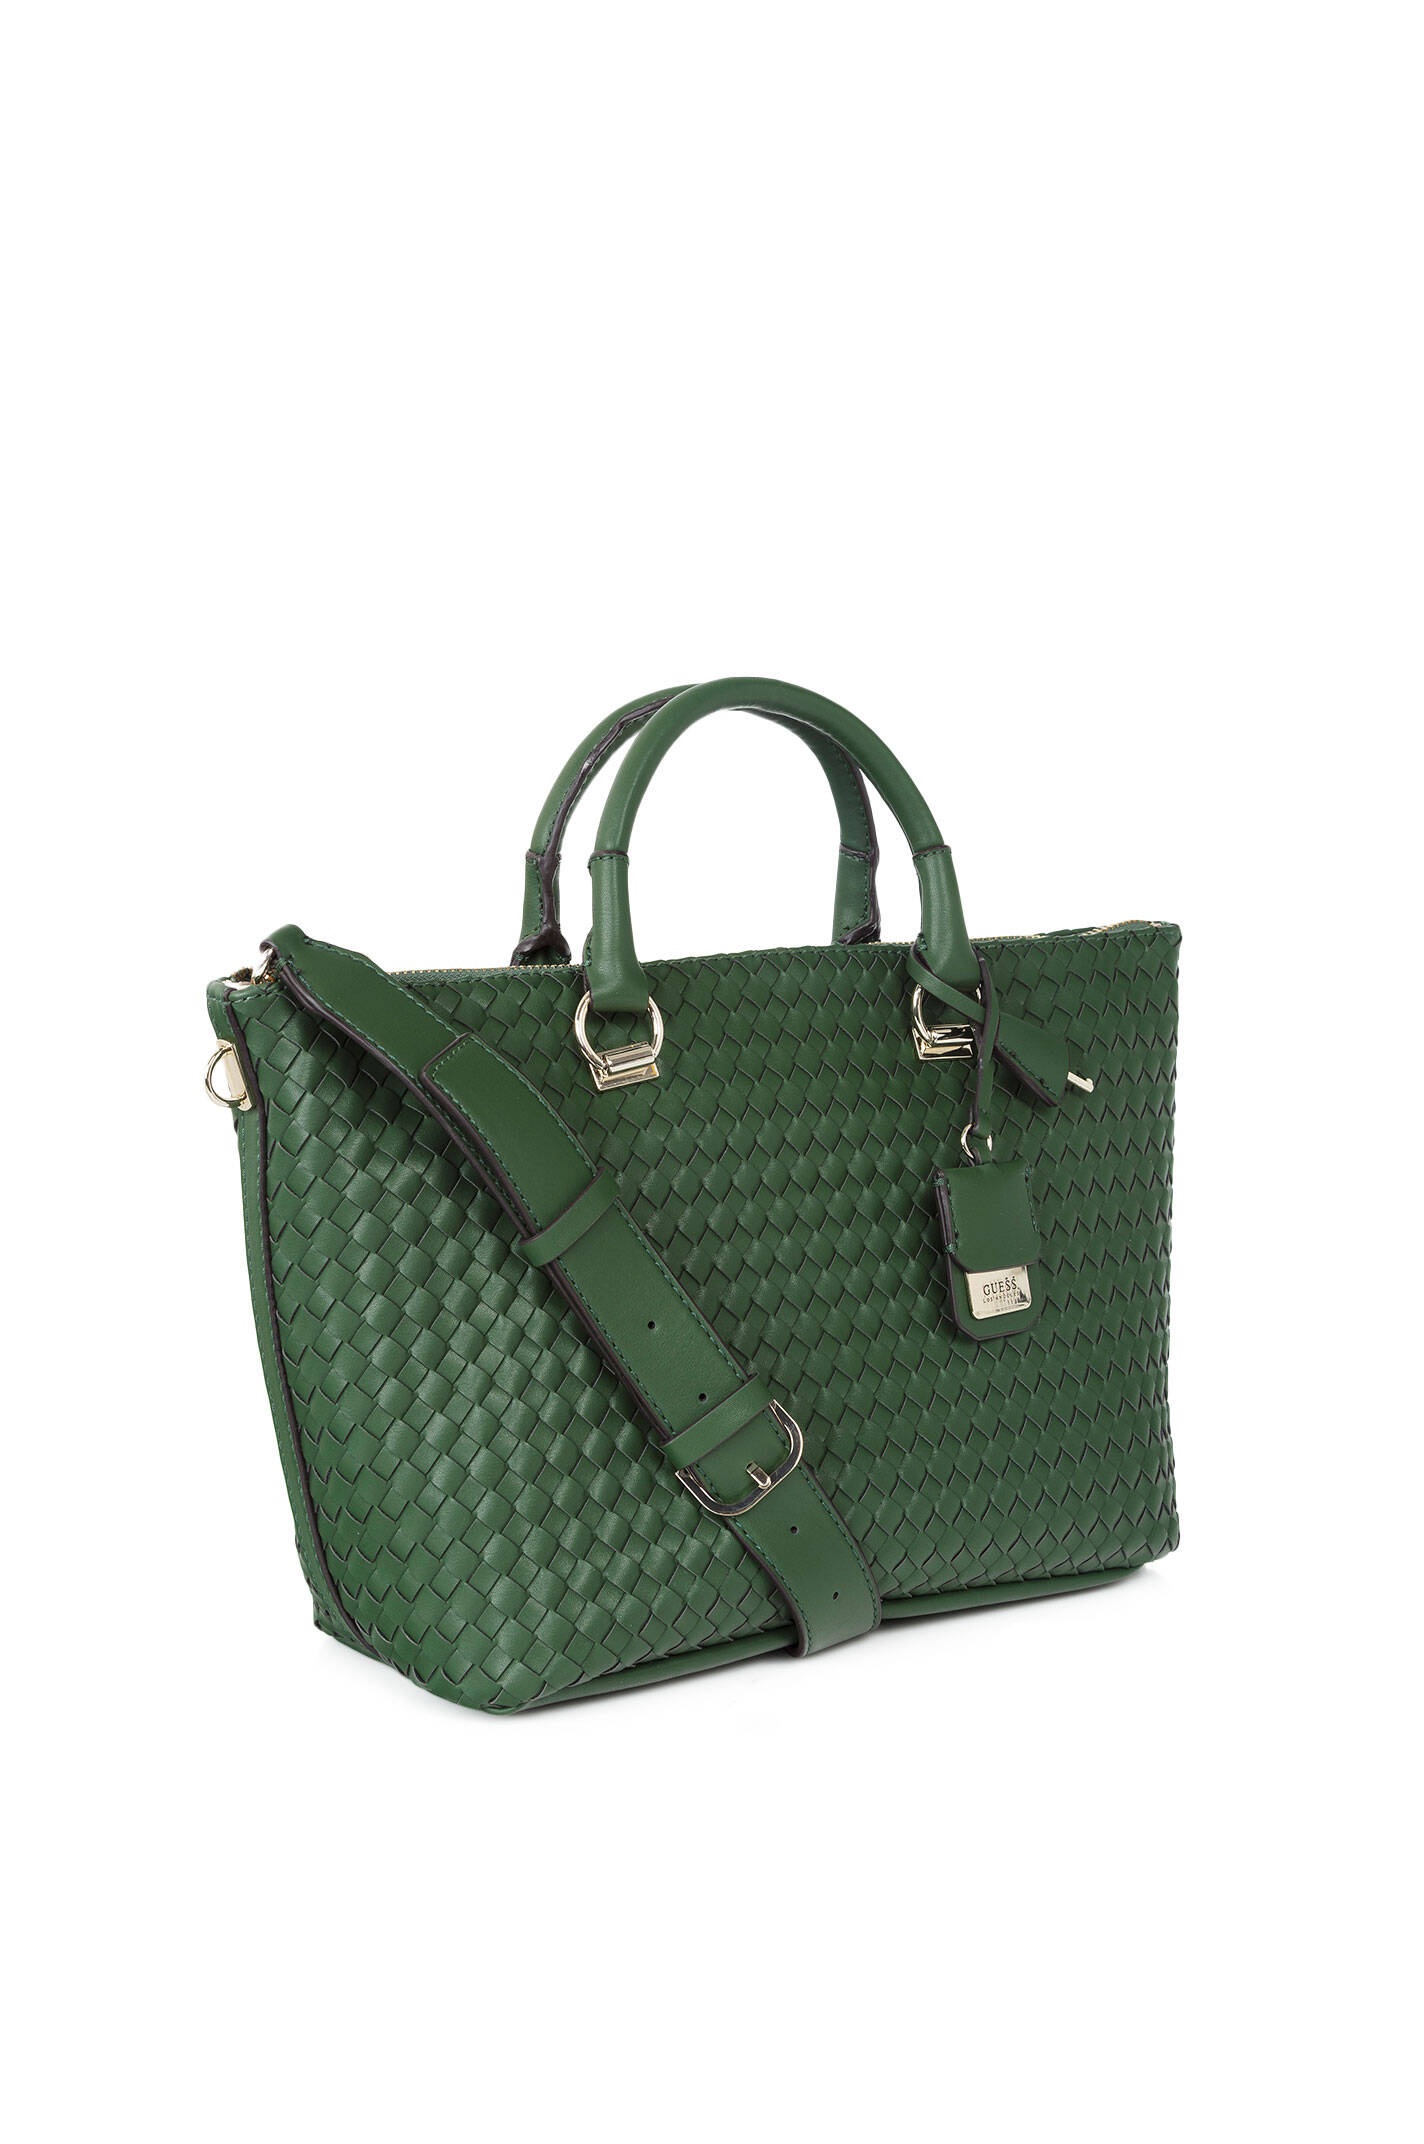 05e8b504ea48 Zoie Shopper Bag Guess